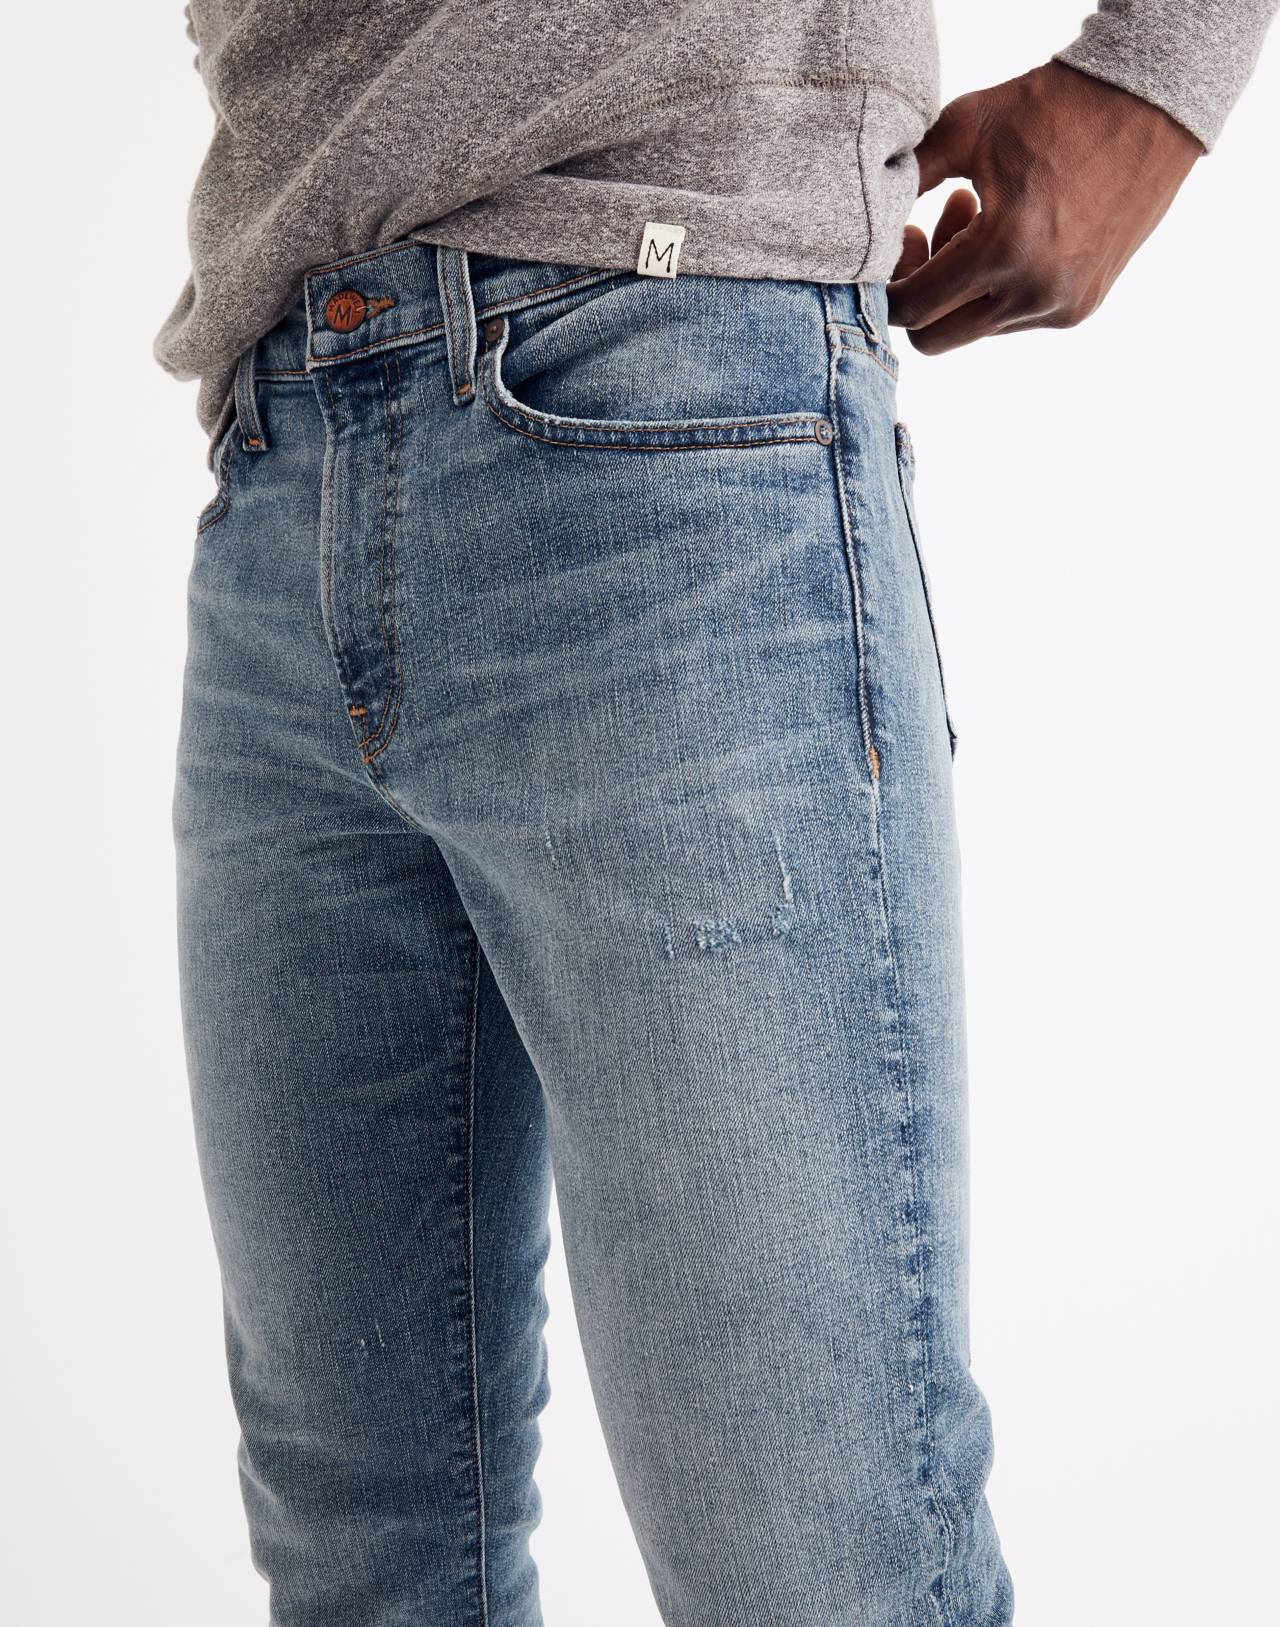 Slim Jeans in Santell Wash in santell image 3